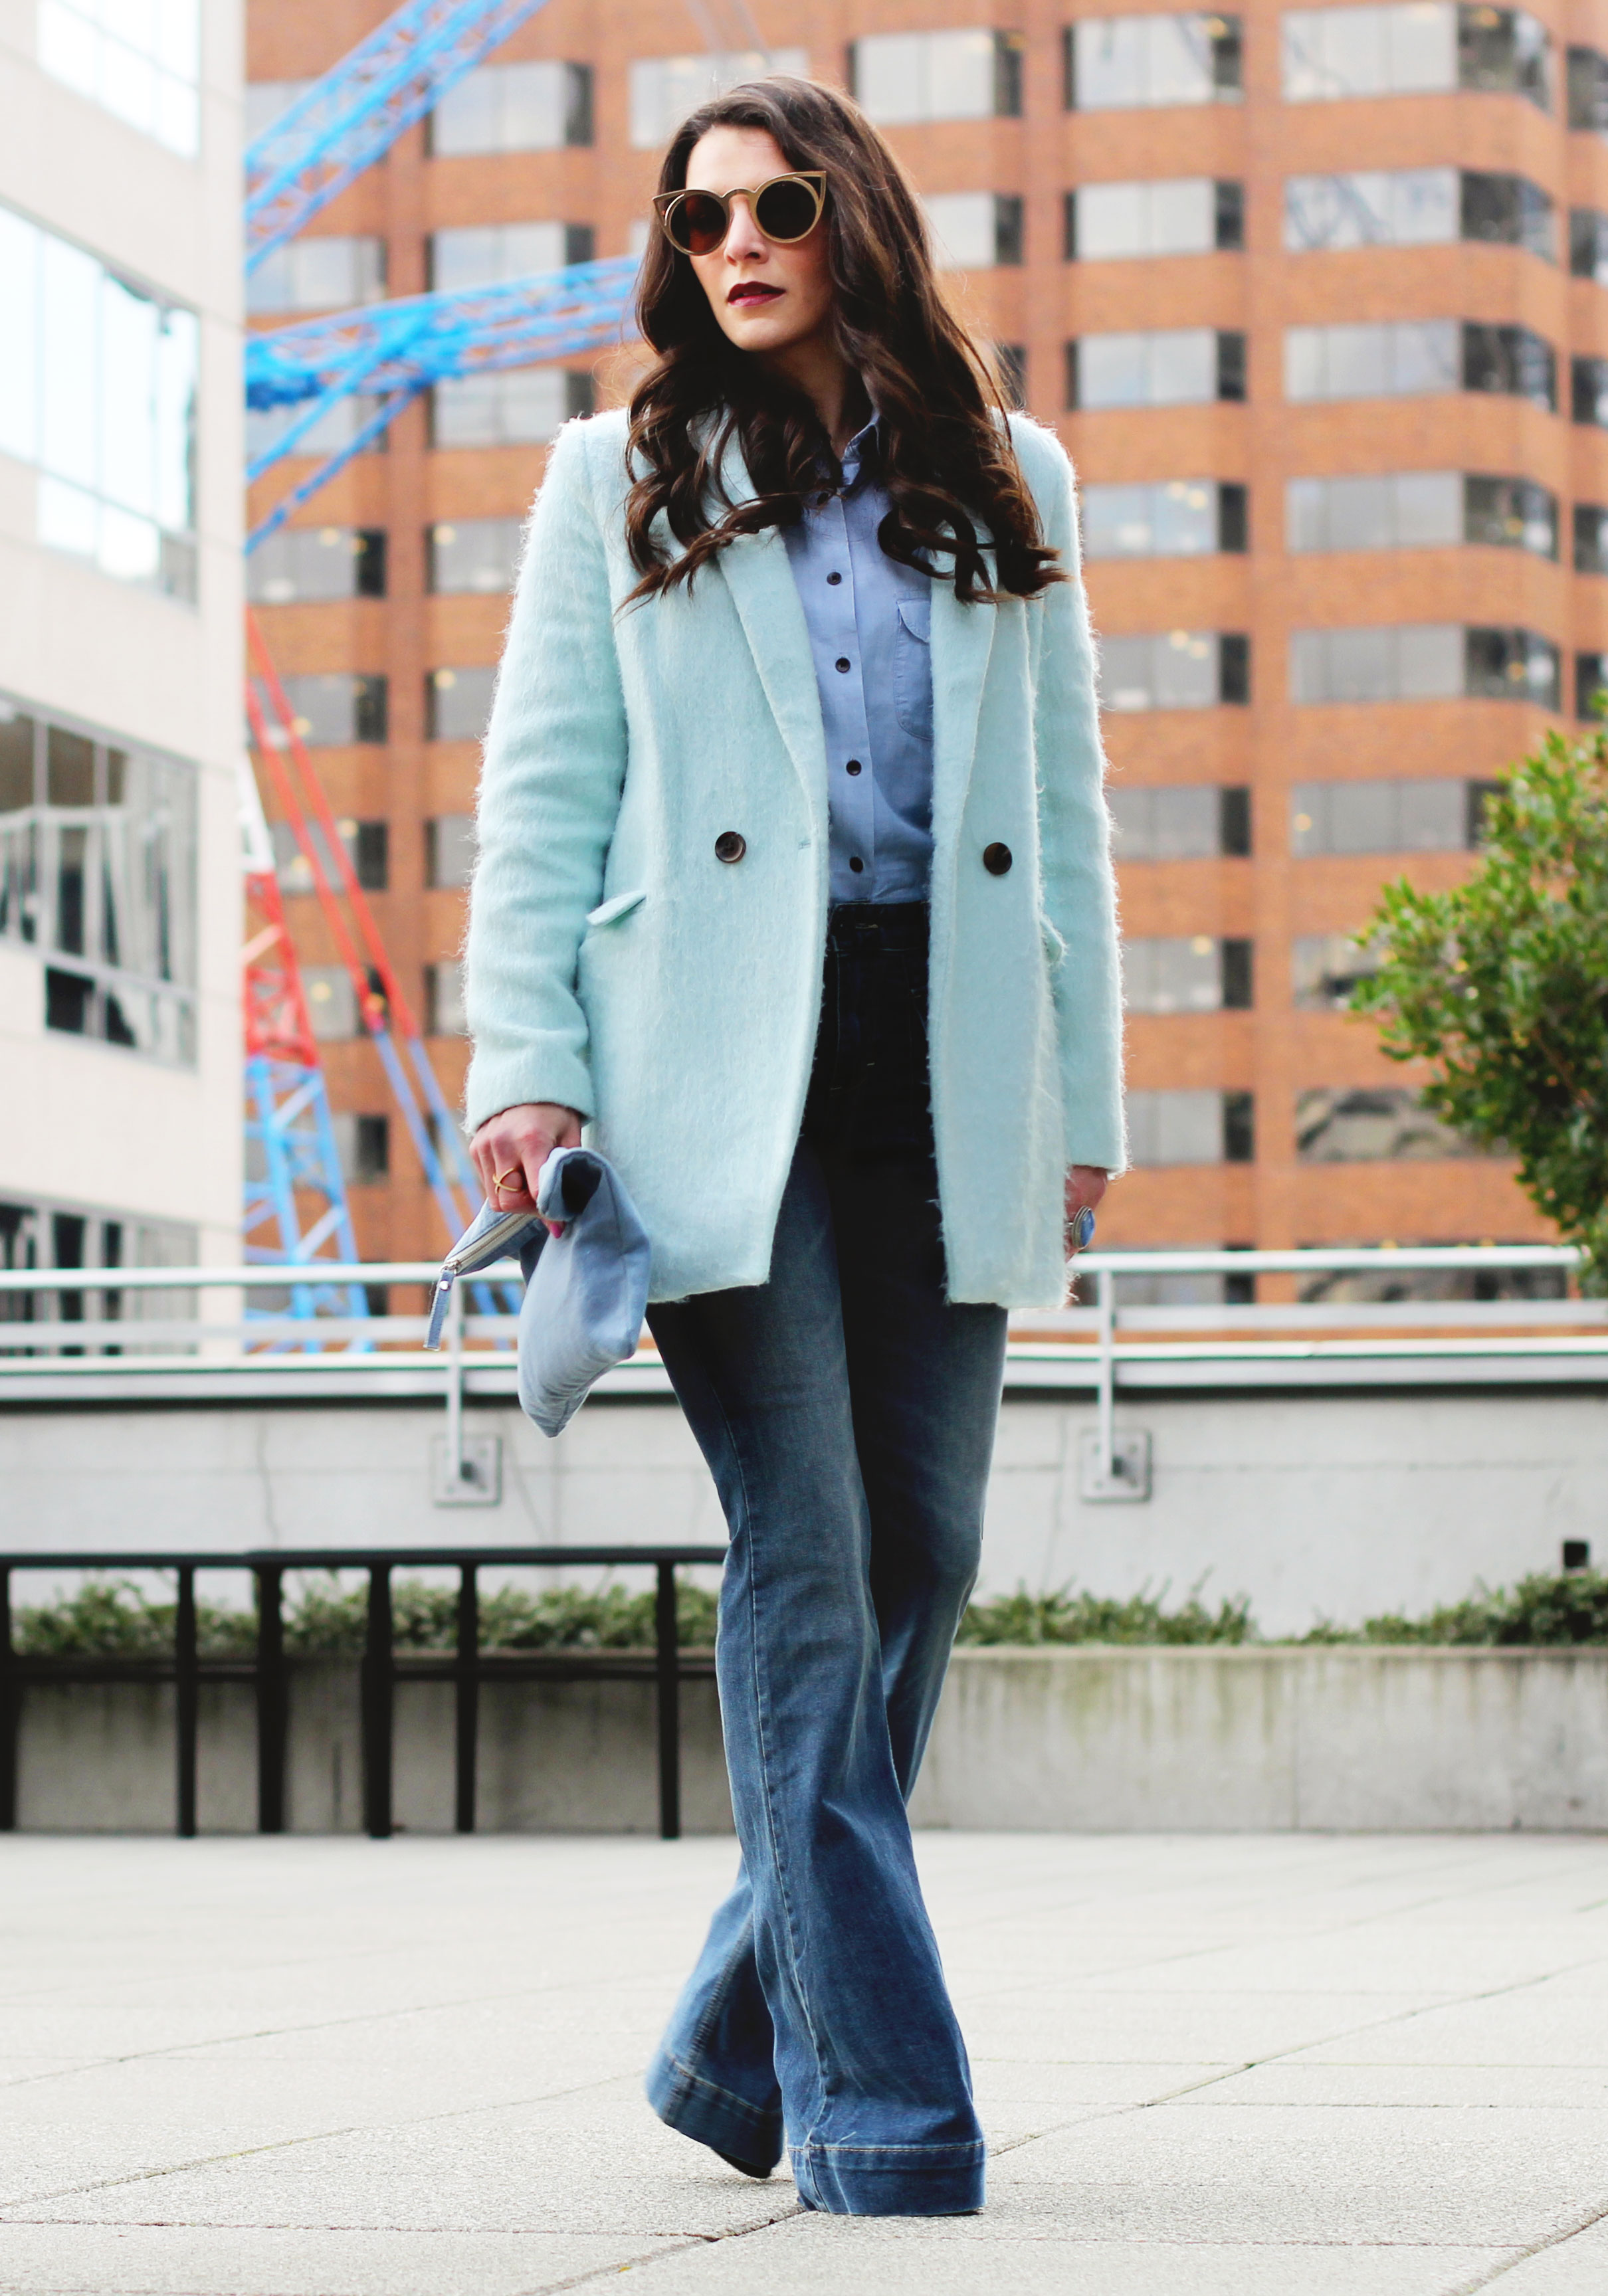 Winter Outfit, All Denim Canadian Tuxedo, Flare Jeans, $10 Gold Cat Eye Sunglasses, Mint Green Coat